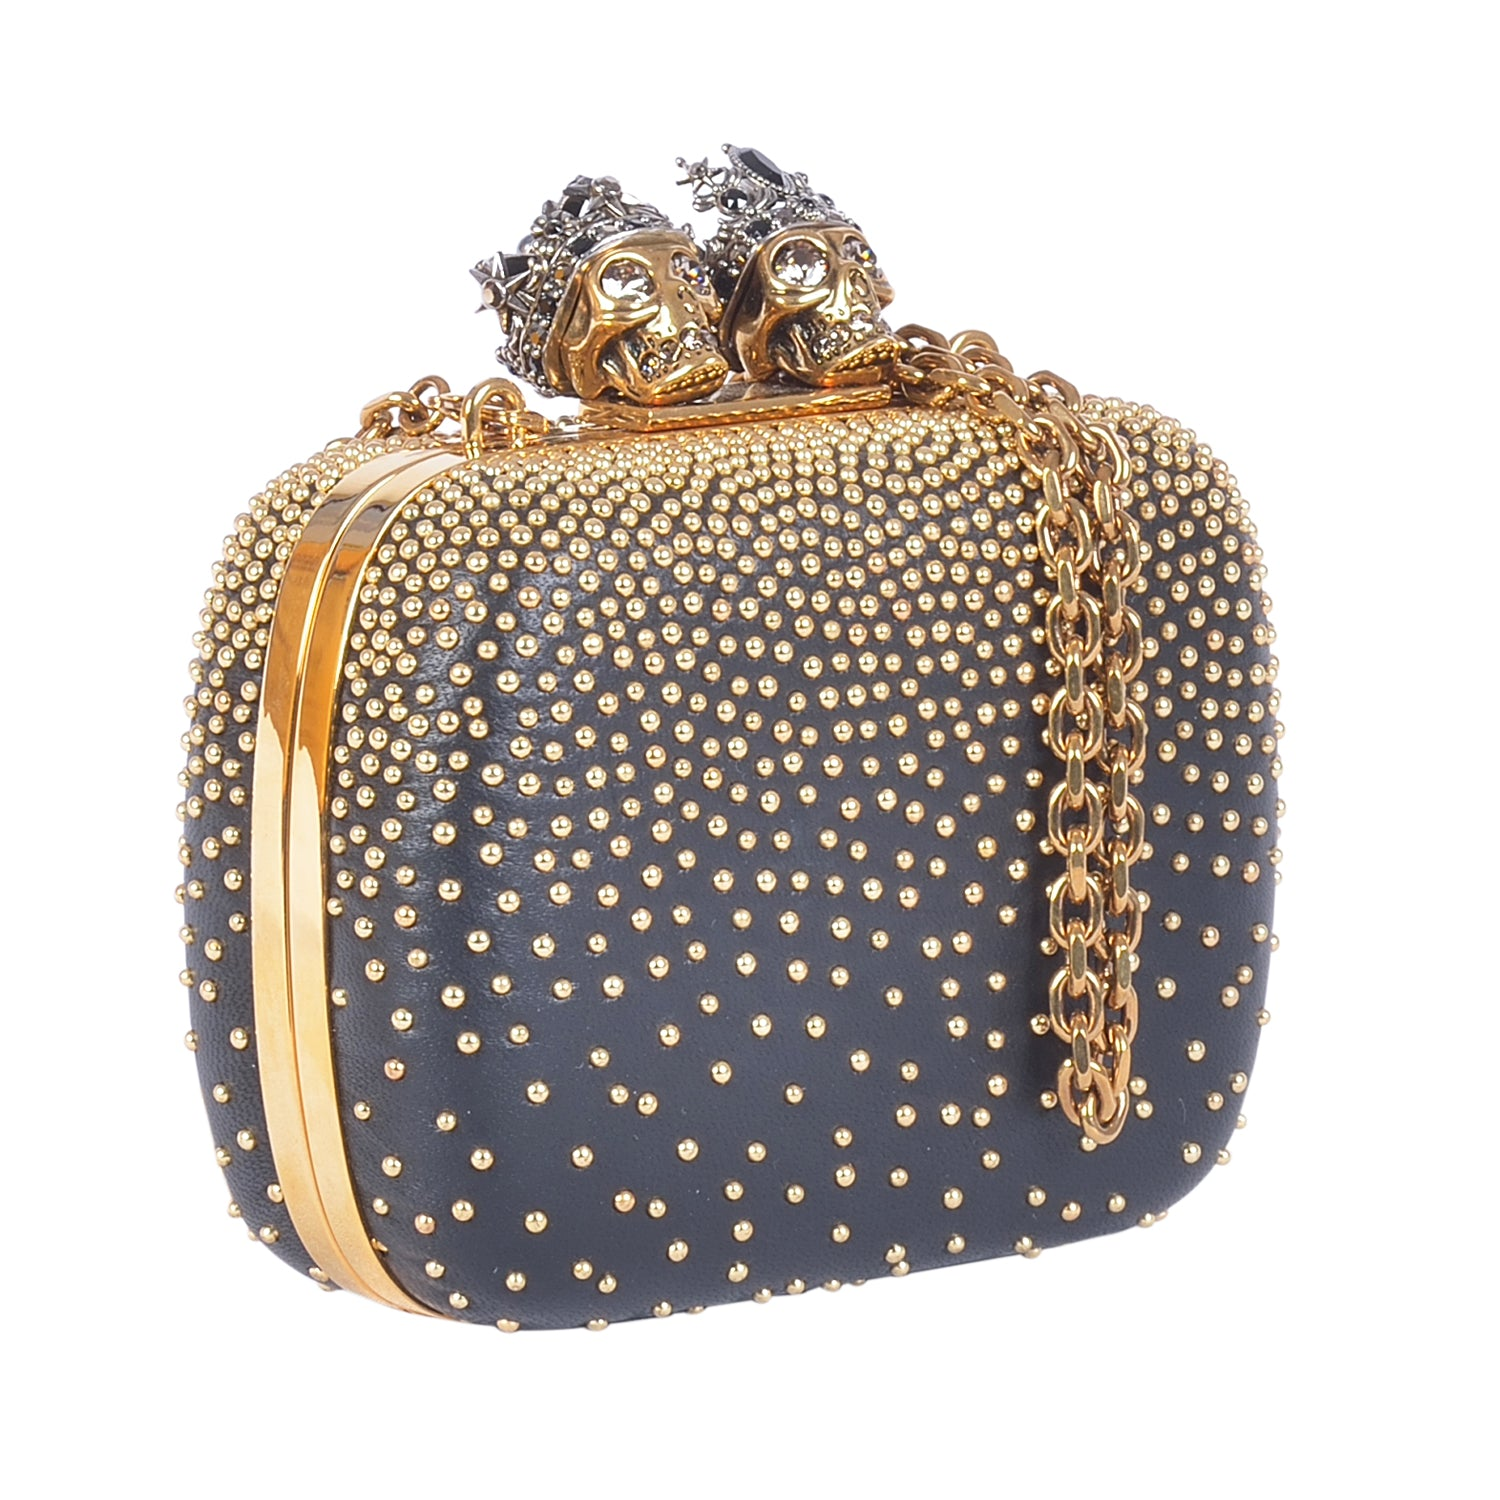 ALEXANDER MCQUEEN MINI KING & QUEEN CLUTCH BLACK WOMEN BAGS